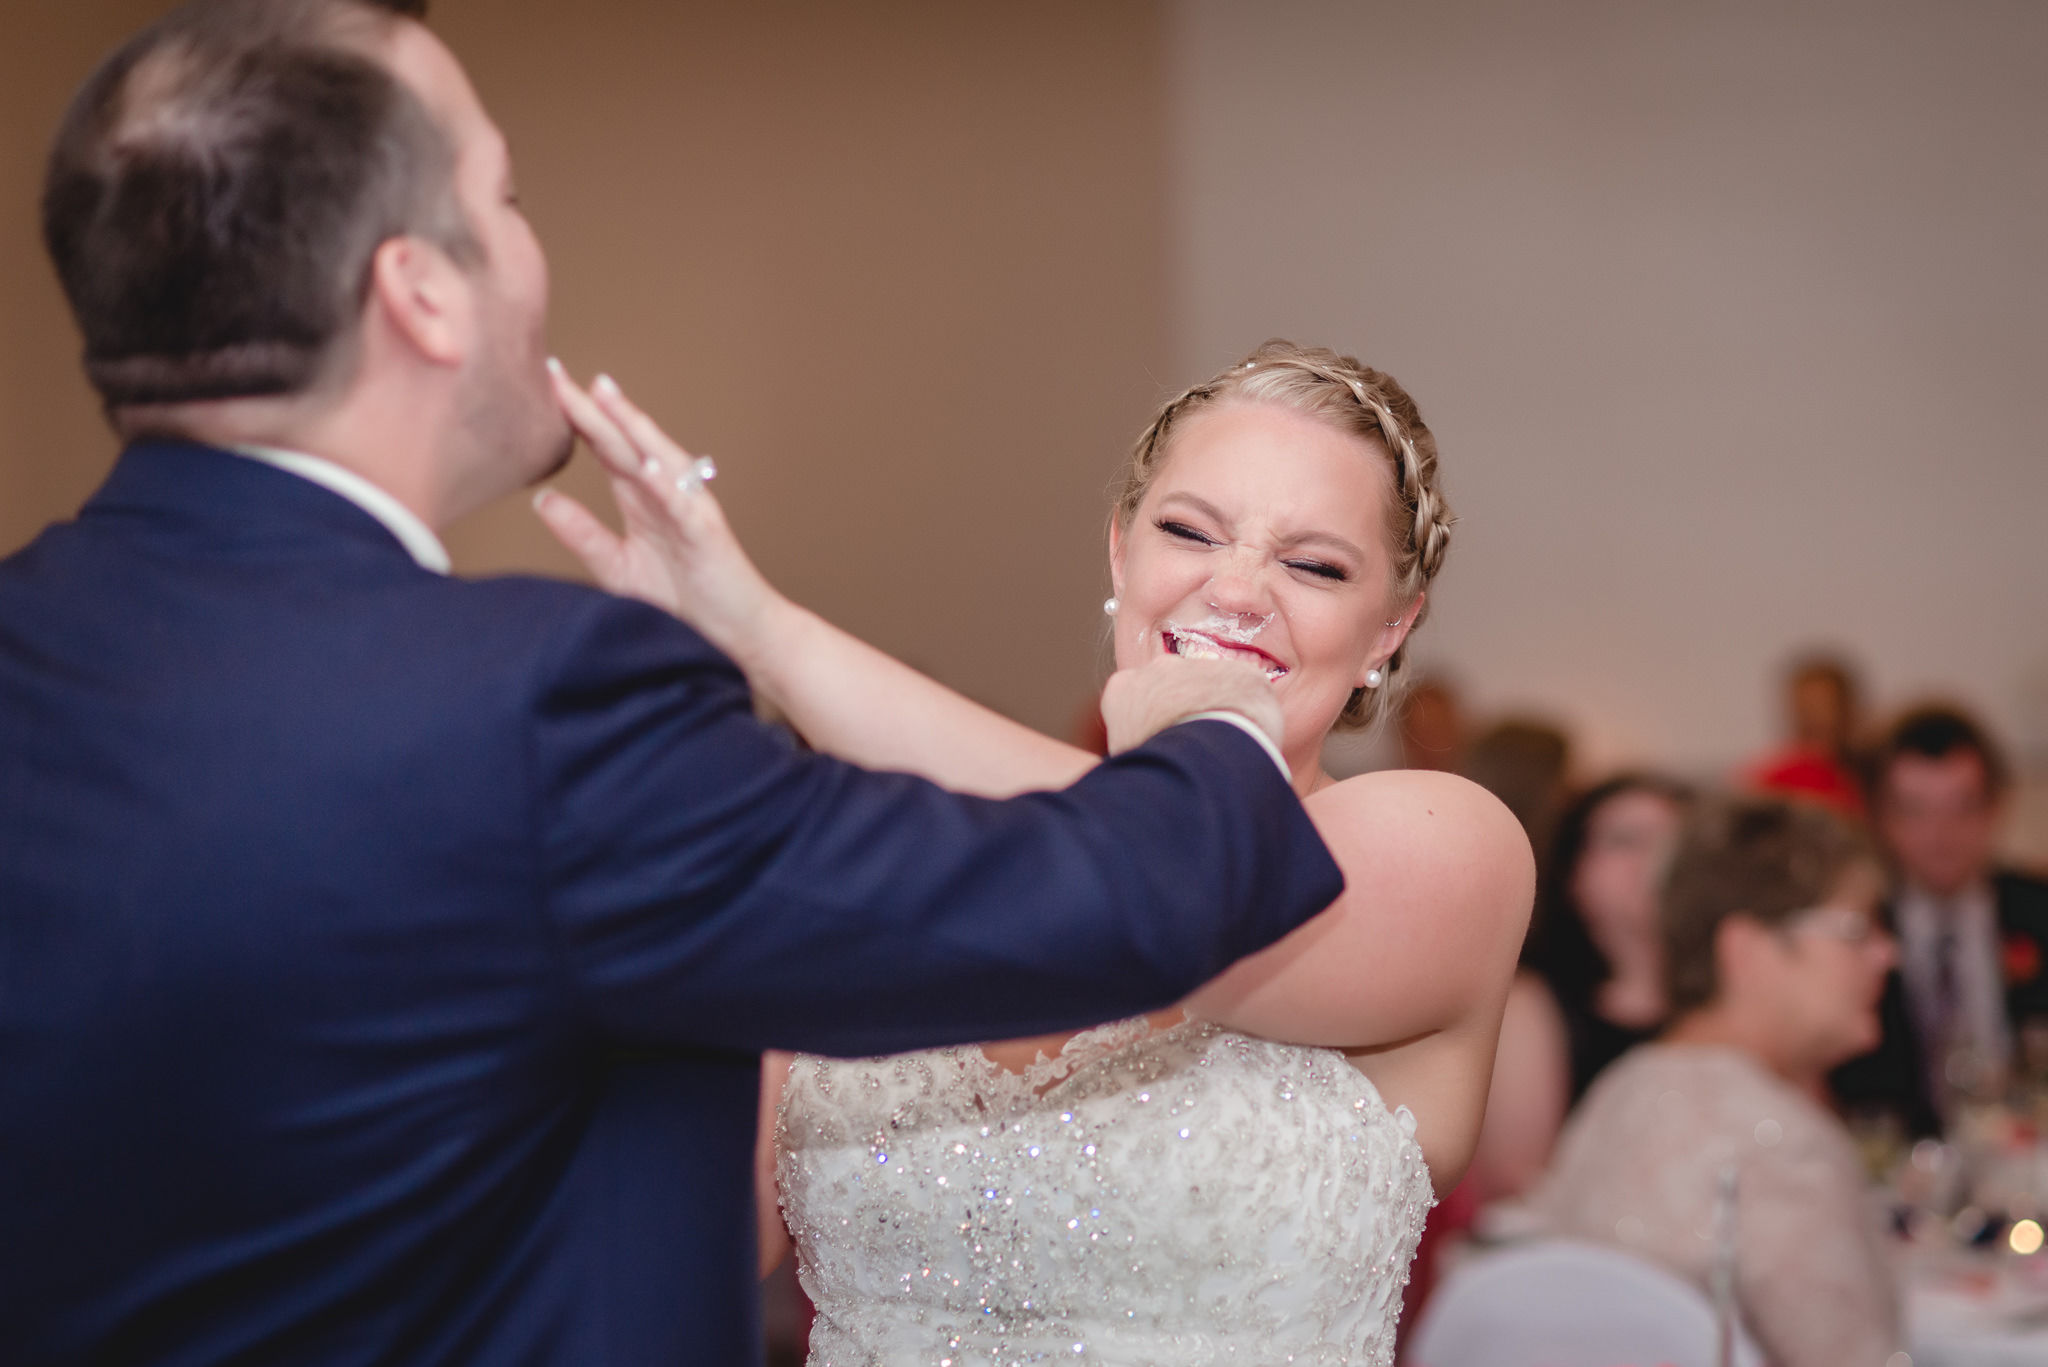 Groom smears icing on the bride's face